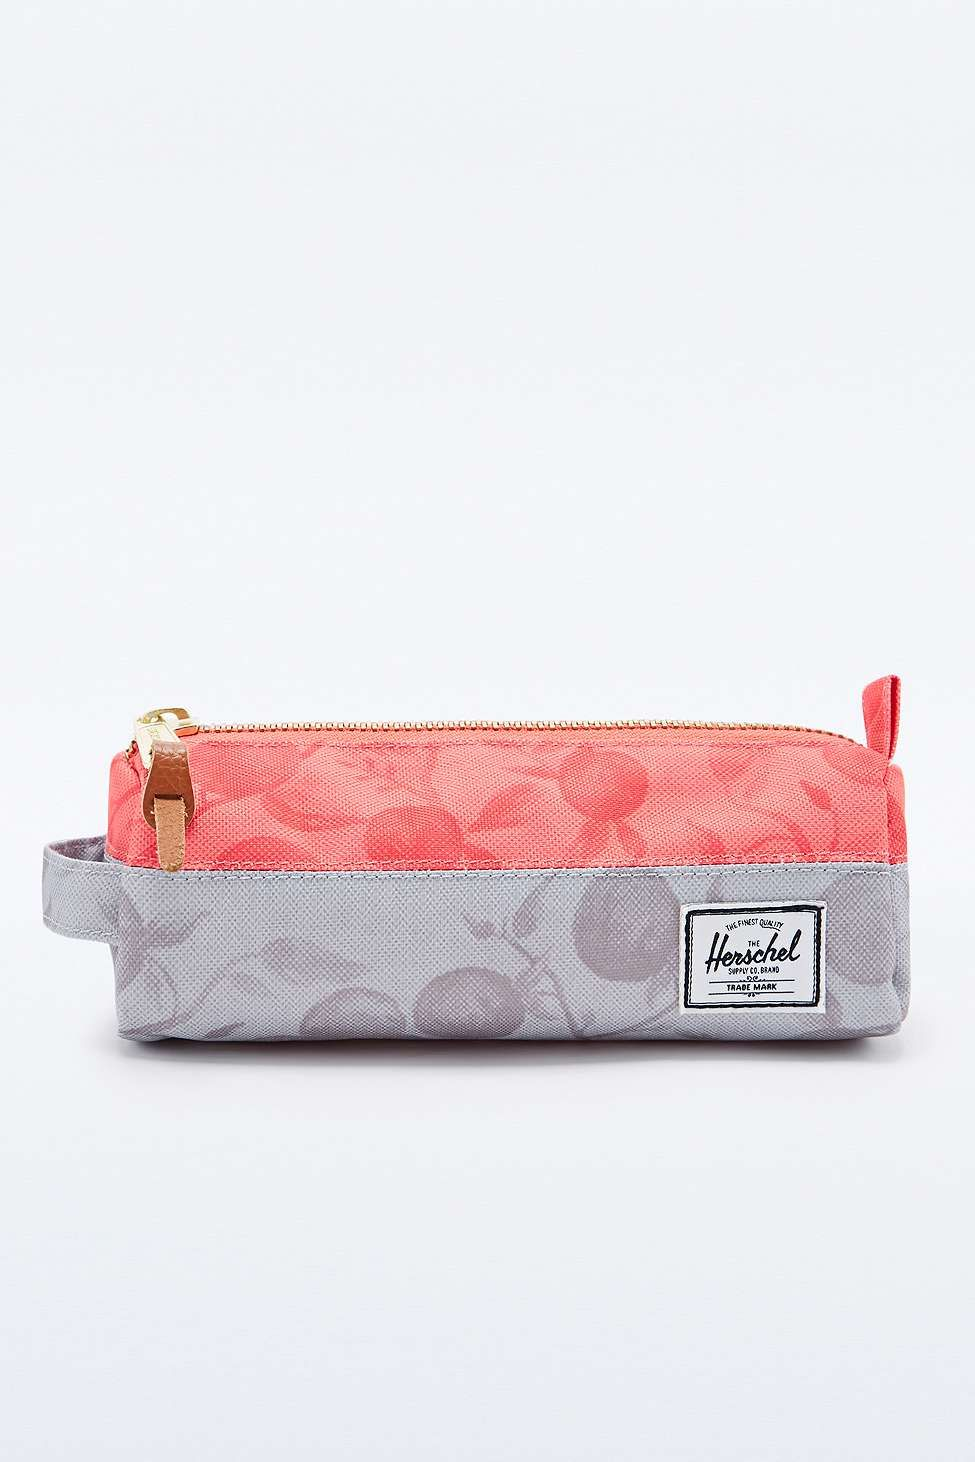 c589ee864cef Herschel Supply co. Settlement Pencil Case in Grey and Red